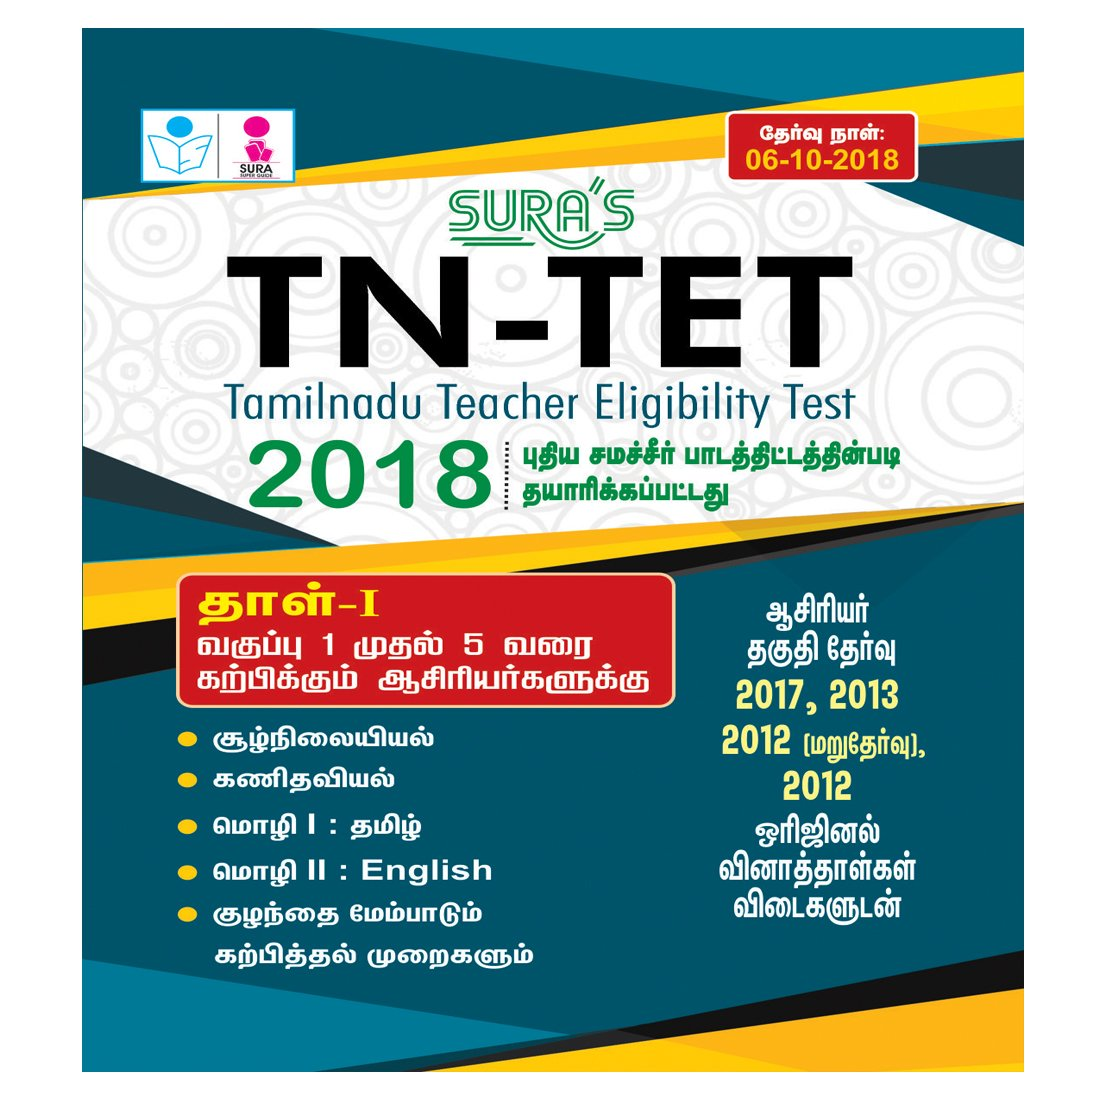 Slr tet guide array buy tn tet paper i book online at low prices in india tn tet fandeluxe Choice Image